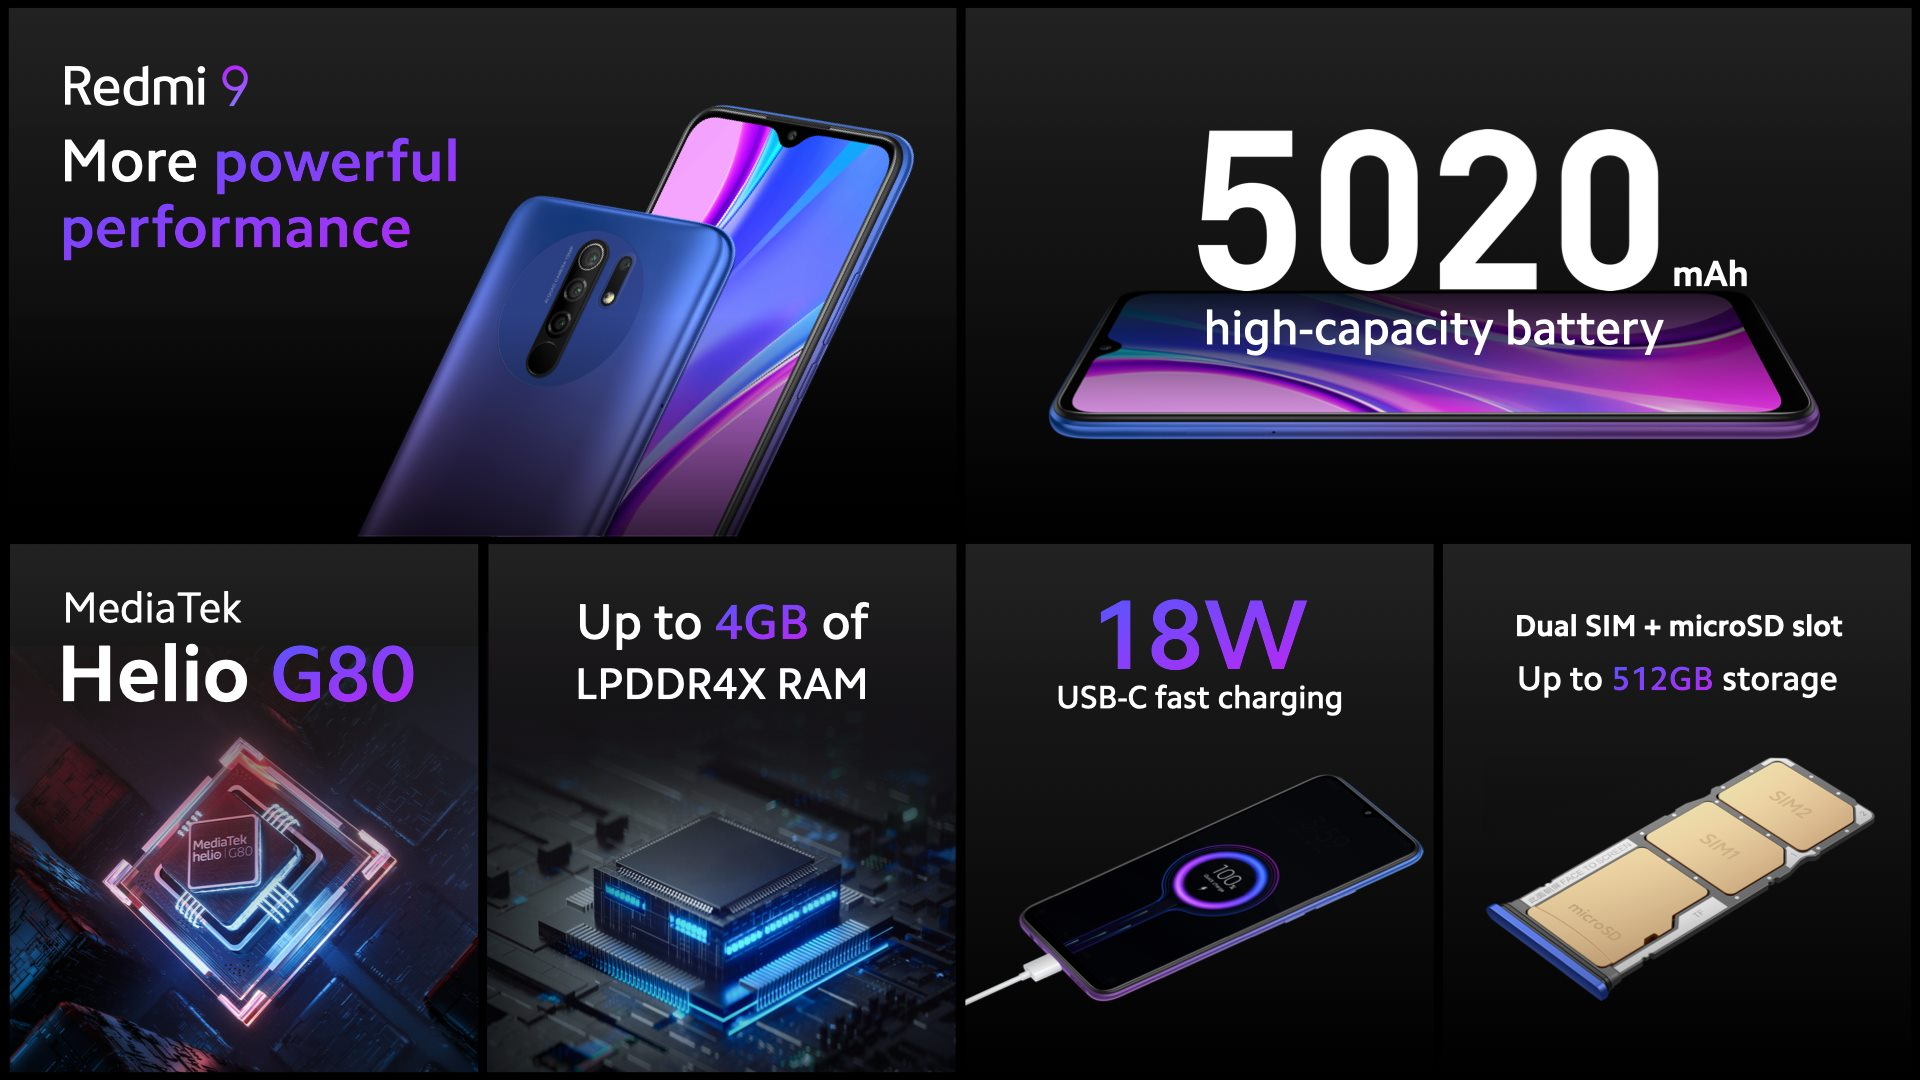 redmi-9-official-price-release-date-availability-philippines-where-to-buy-image-2